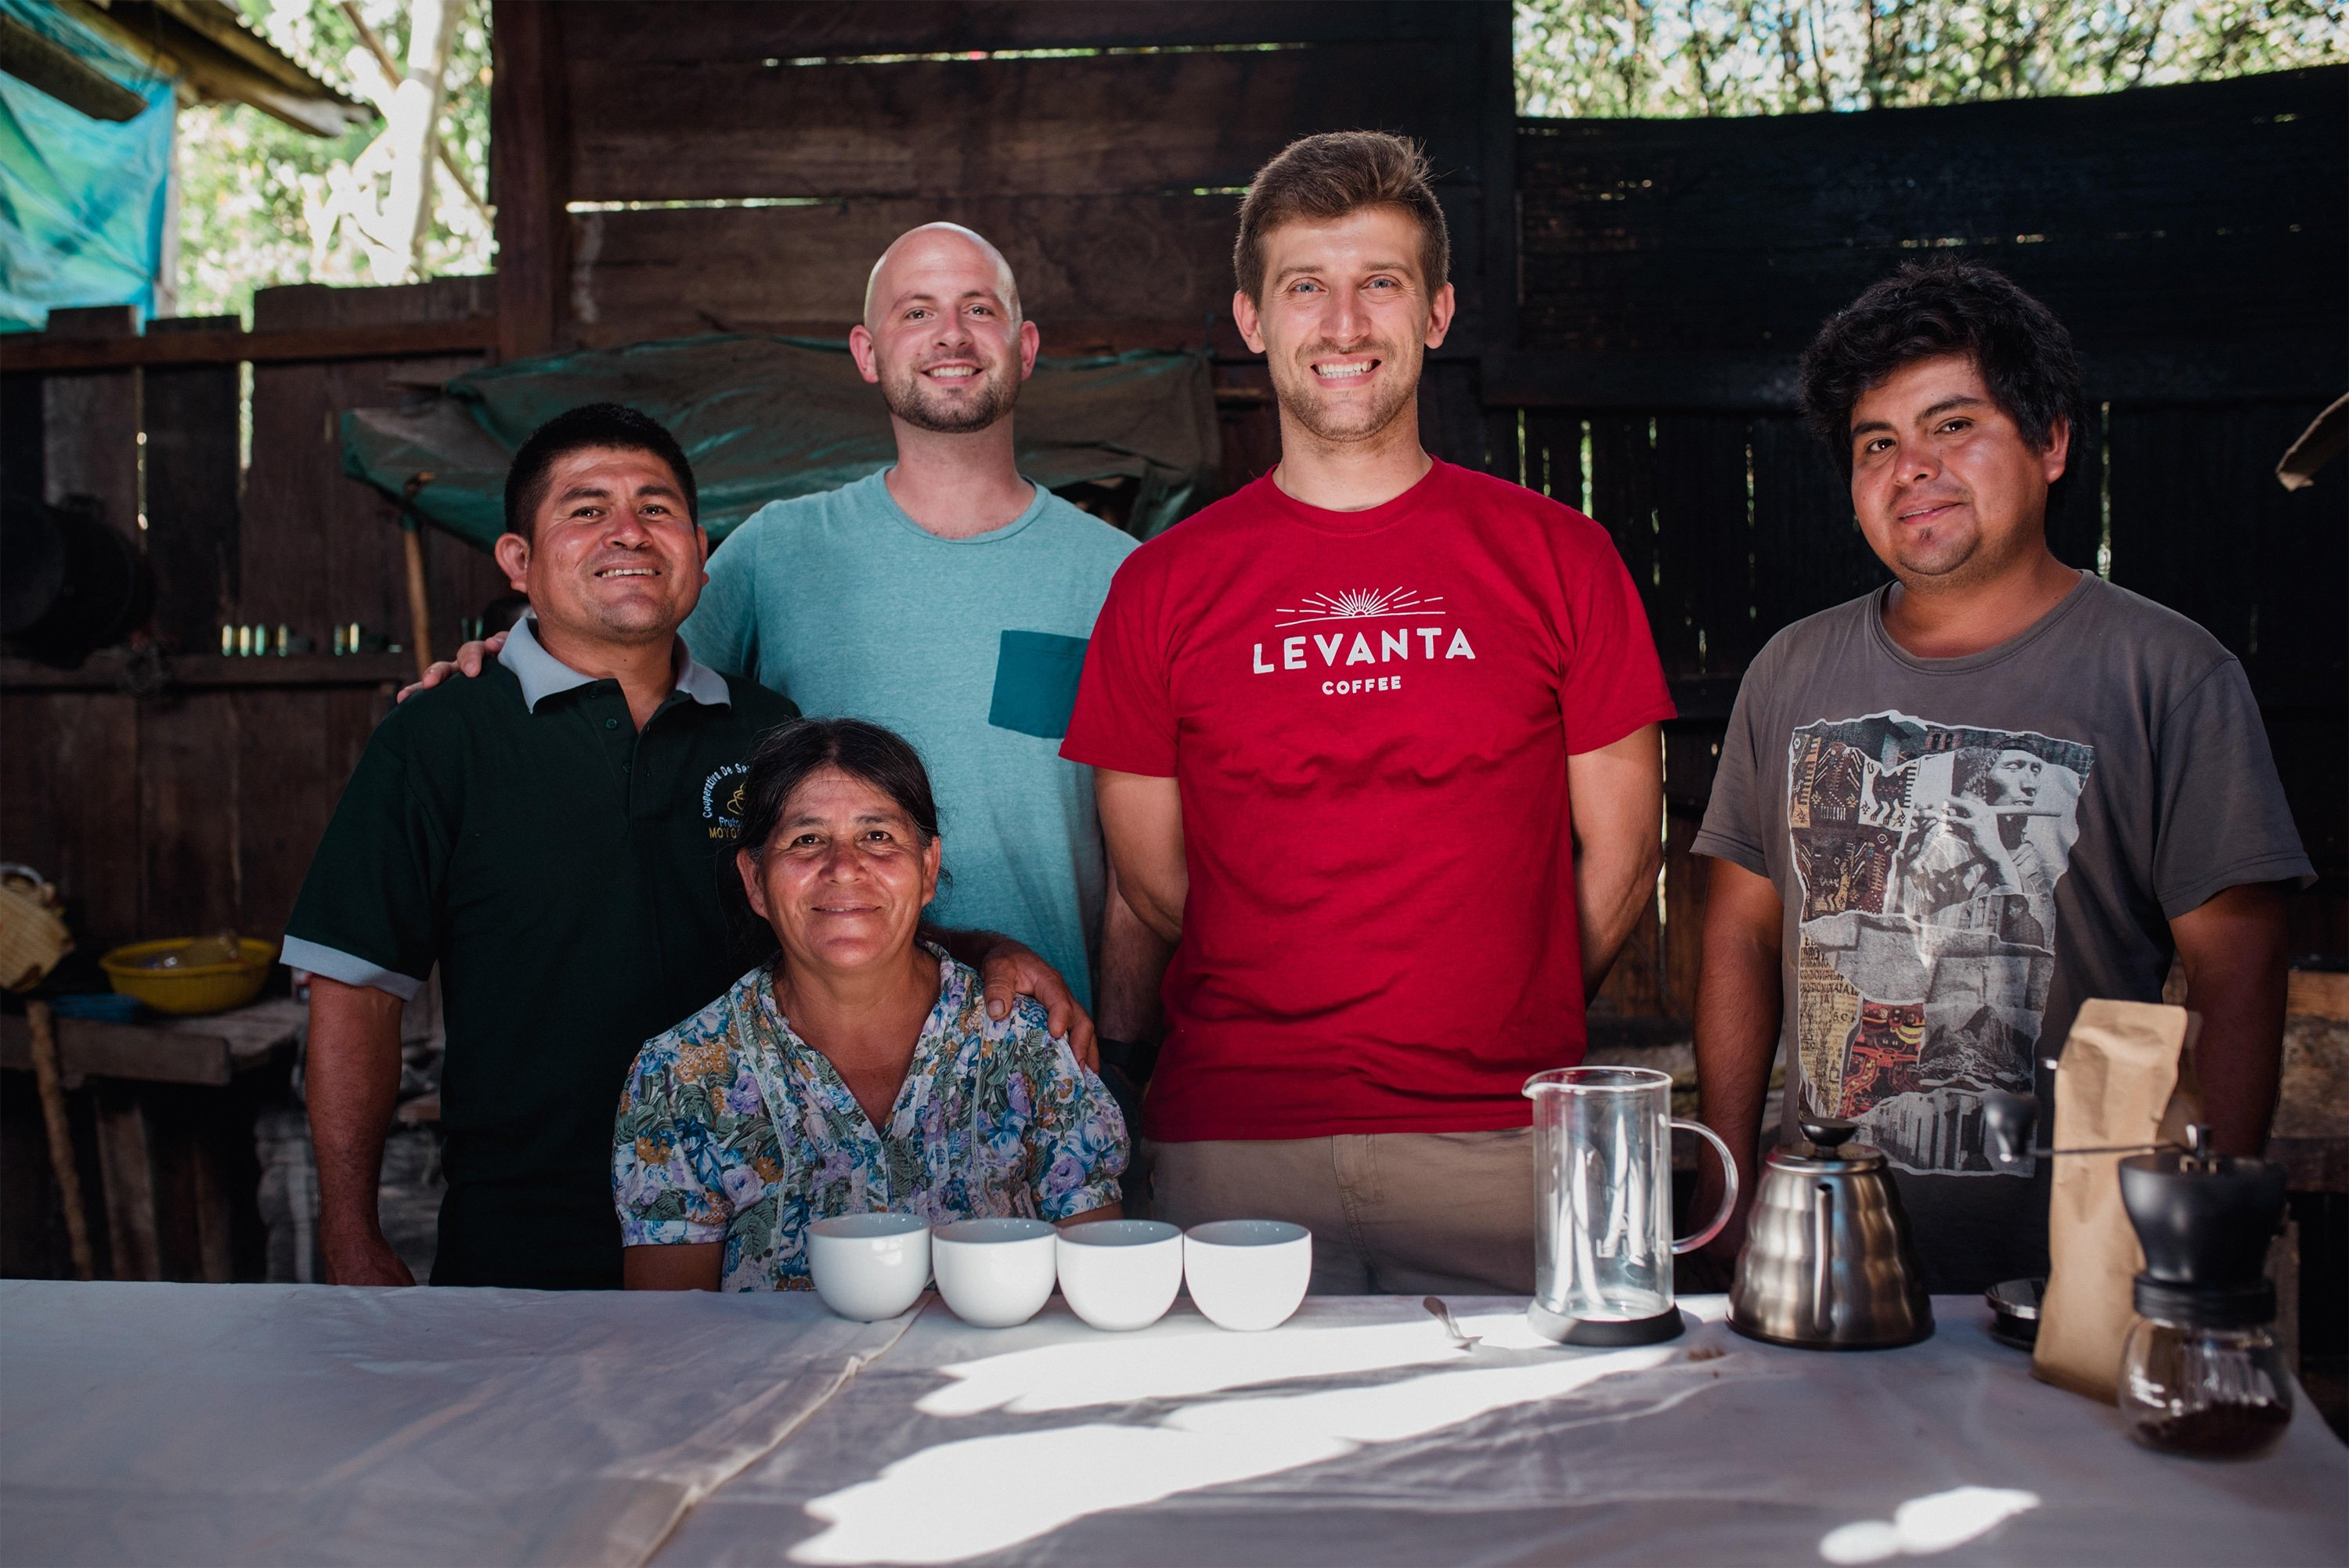 NRA - The Story of Coffee Begins With the People Behind It